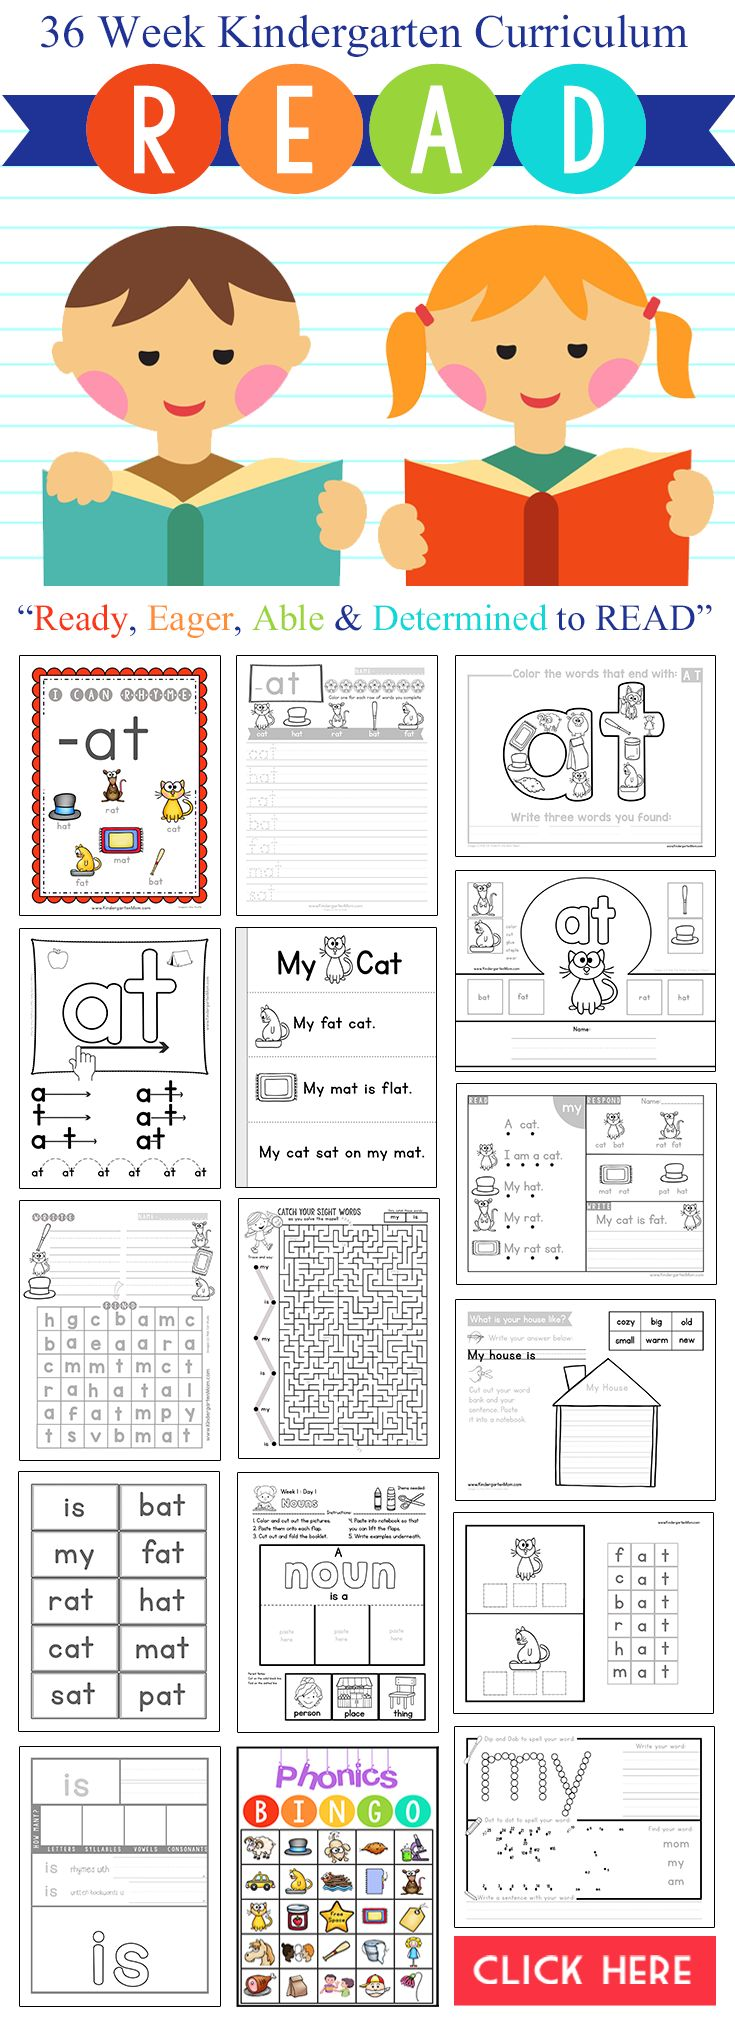 36 Week Kindergarten Reading Curriculum for only $25. R.E.A.D. Covers phonics, sight words, writing, grammar and more. Hands-on, Low-Prep, Instant Download